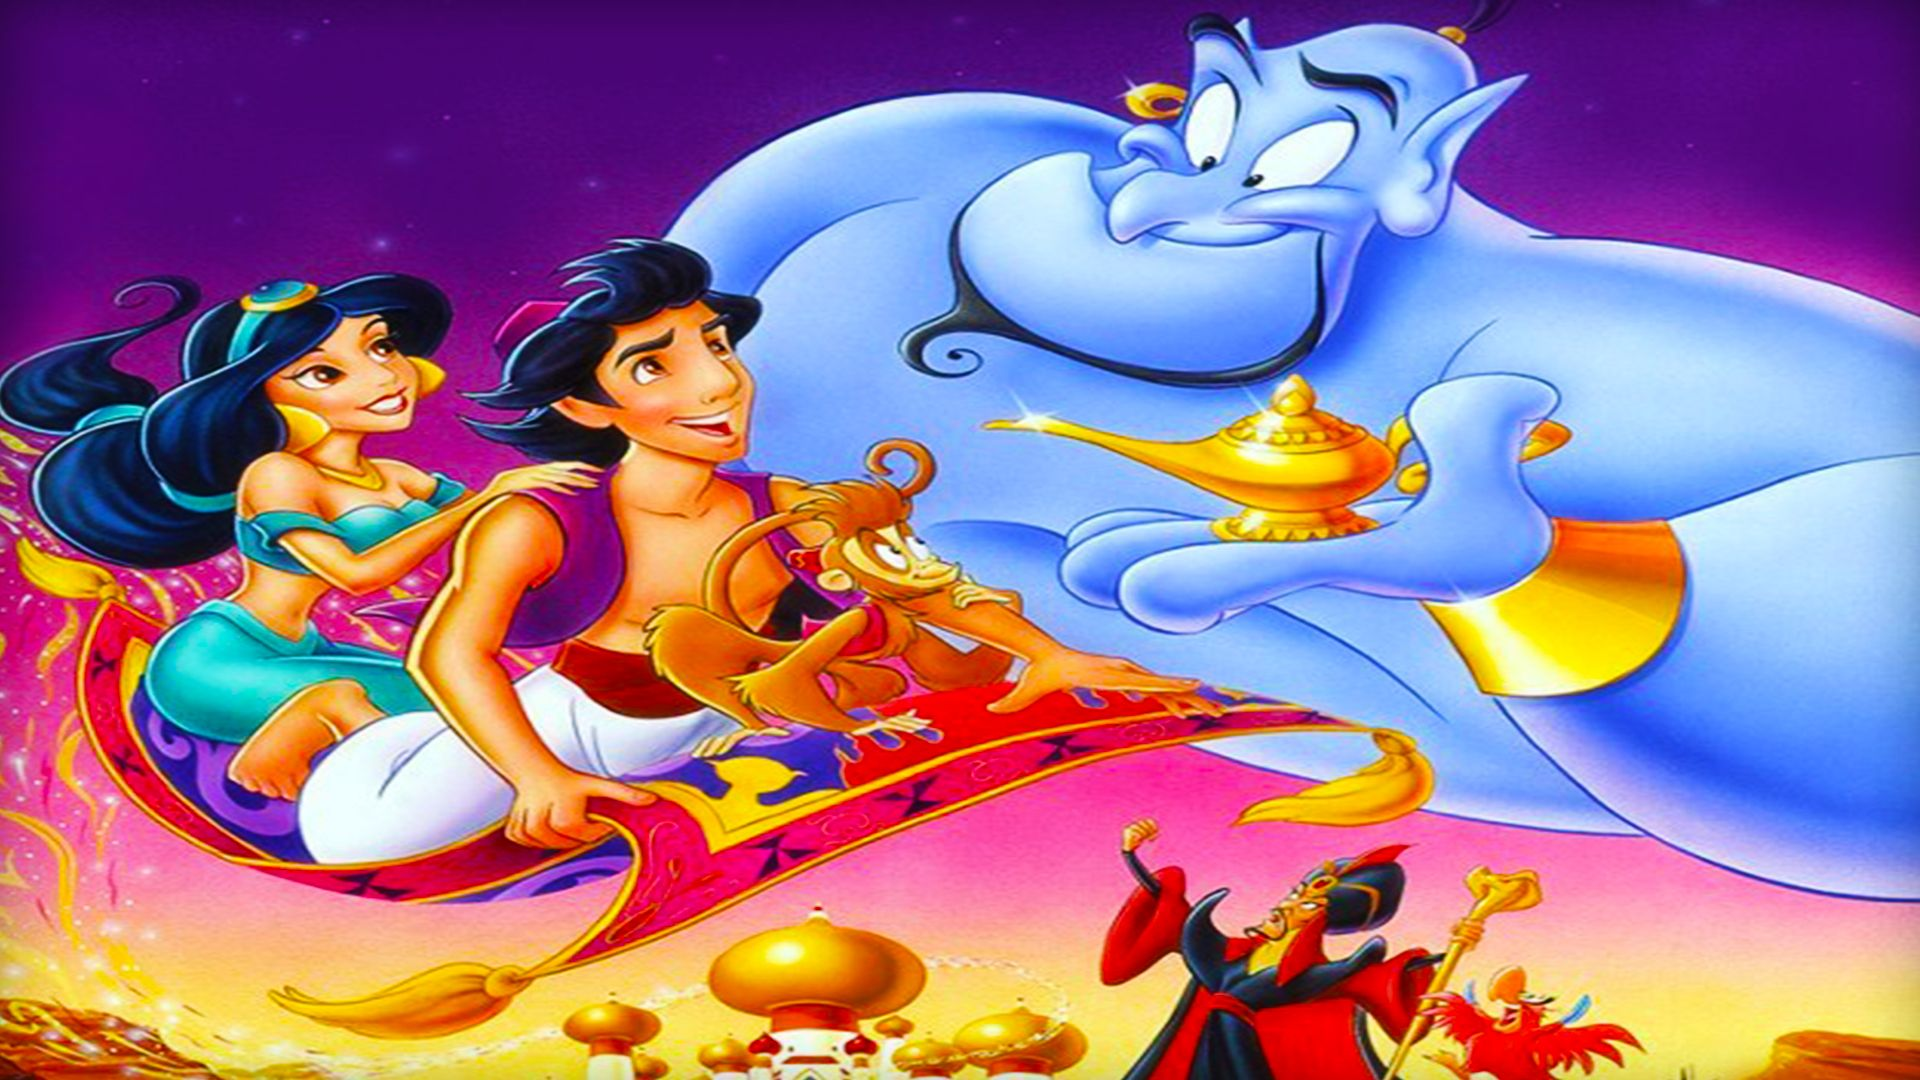 Aladdin gameplay hd full game hope you liked the video make